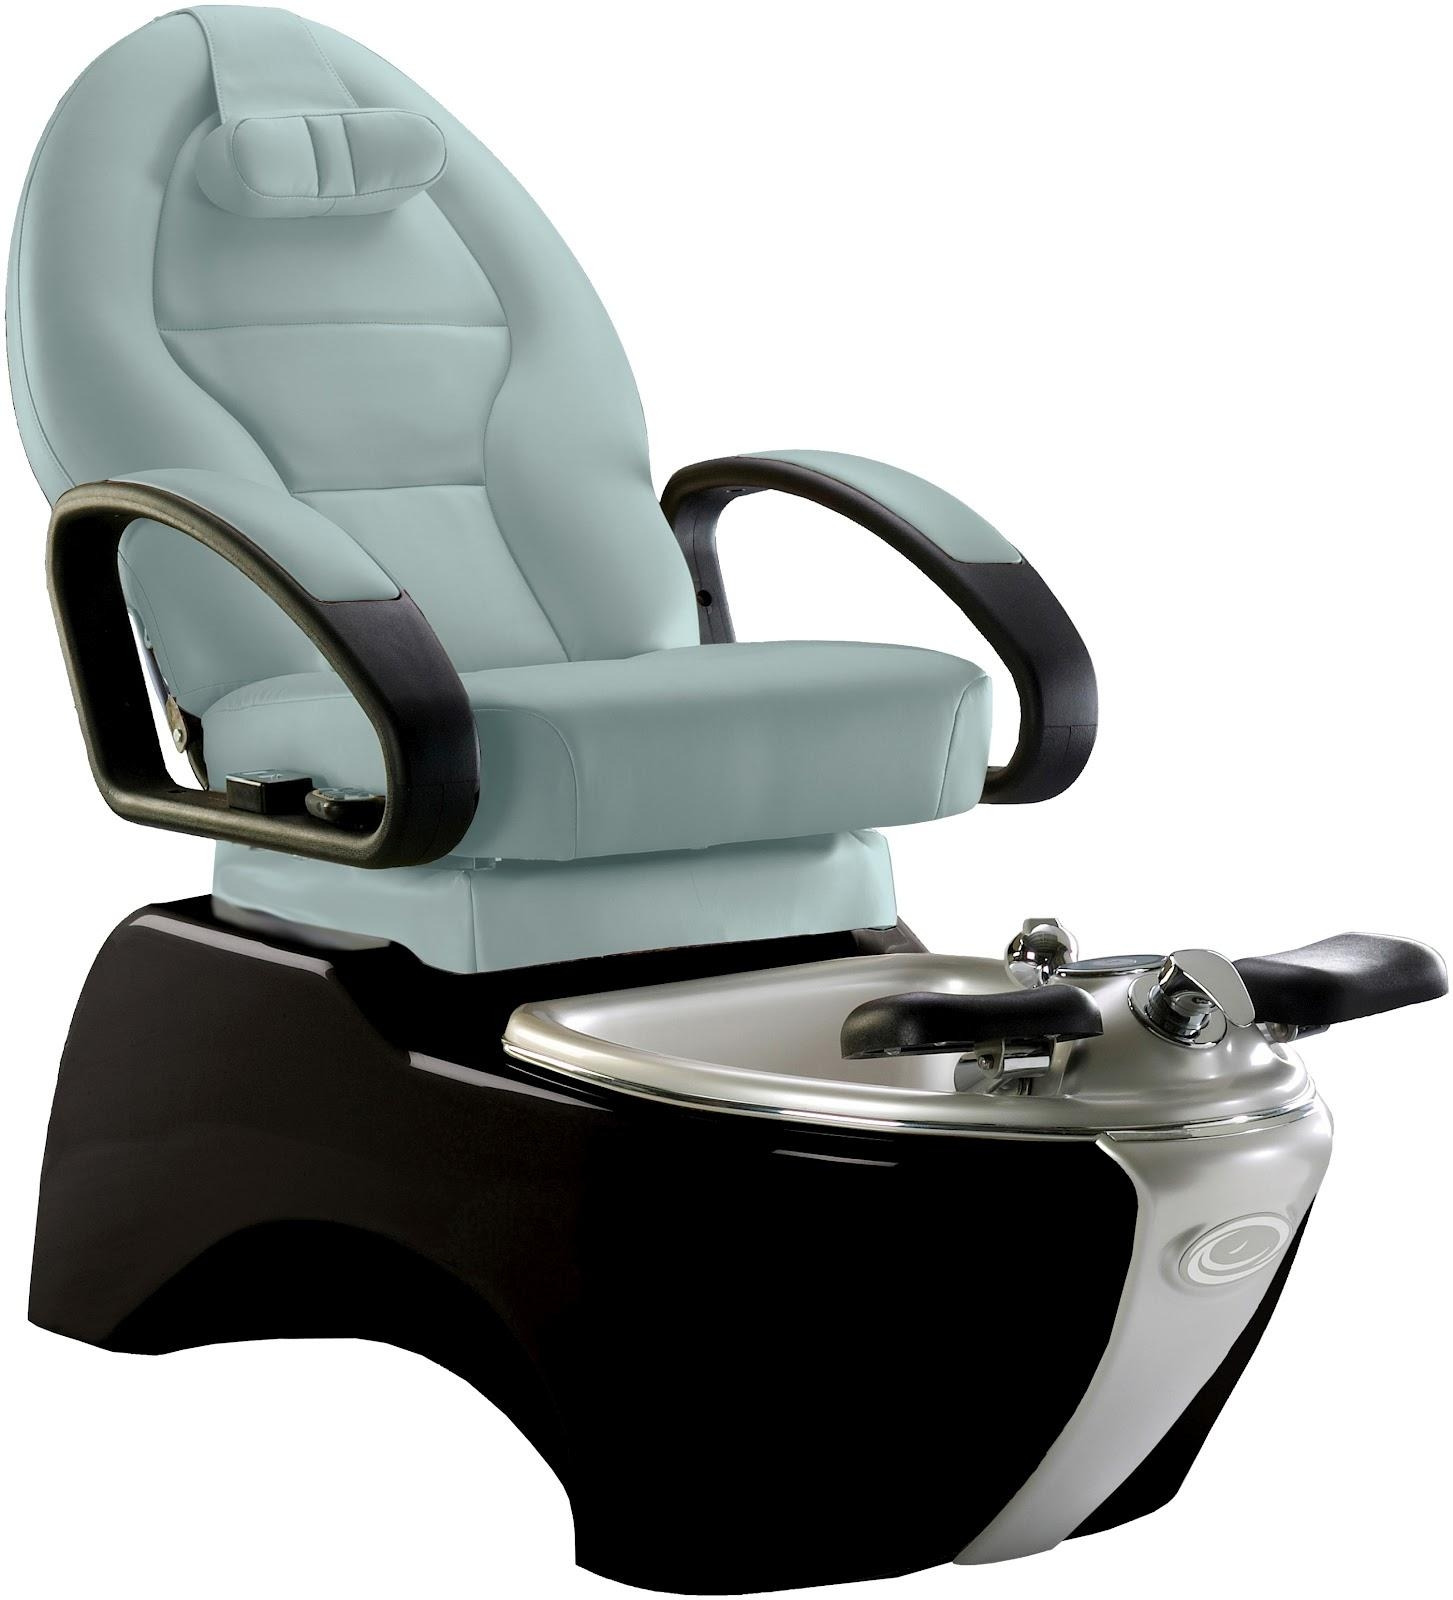 cheap pedicure chairs baby pink chair sofa ideas explore 15 of 20 photos furniture throughout